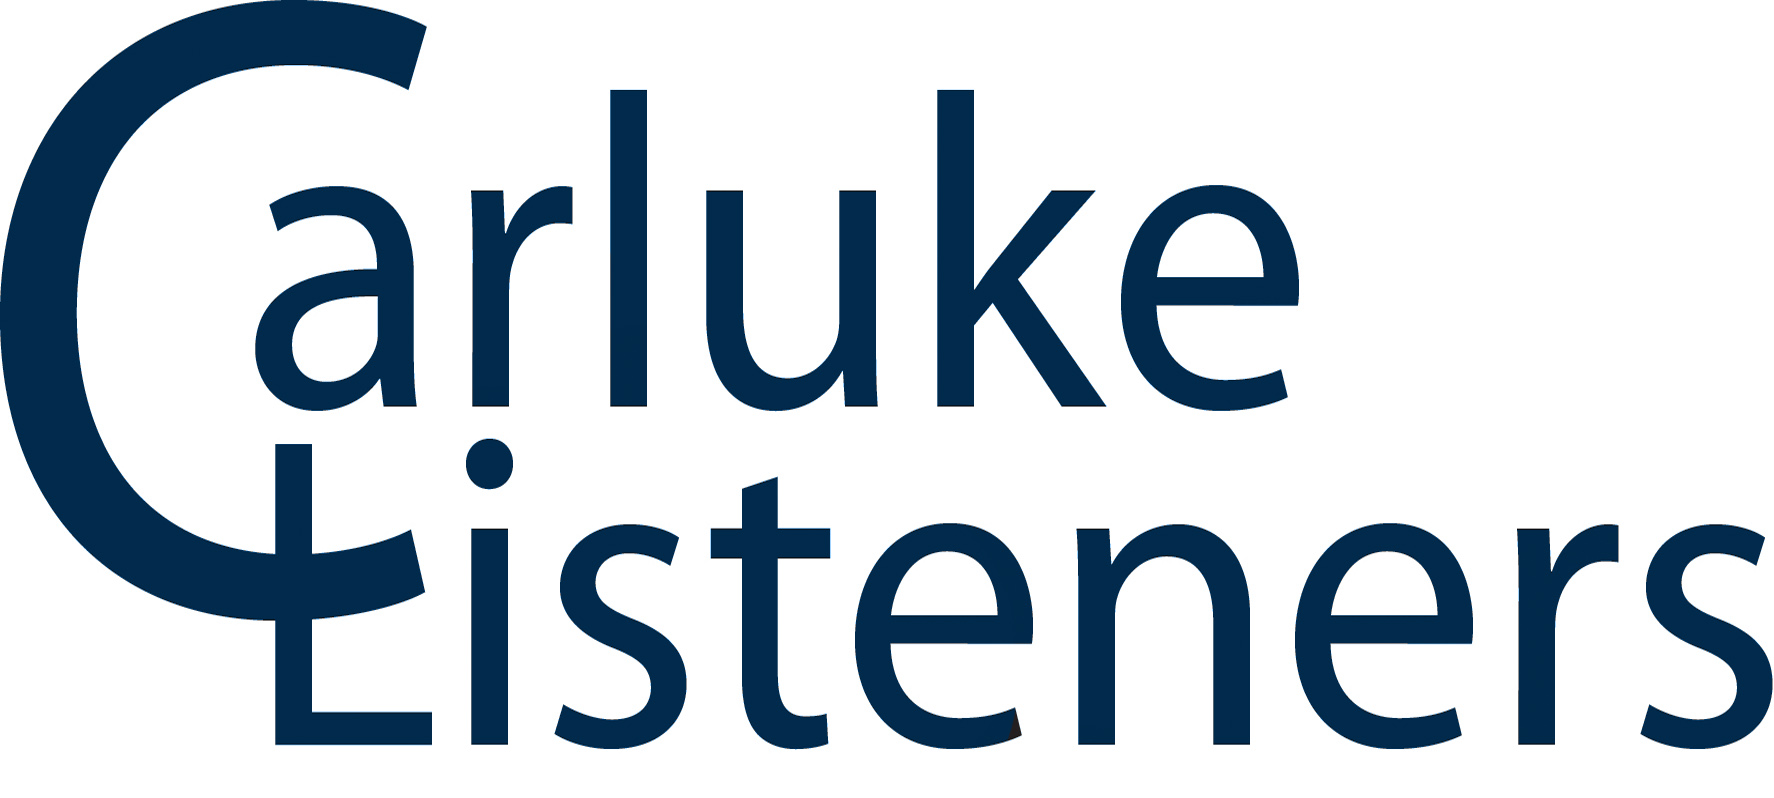 Carluke Listeners can now offer listening sessions using Zoom